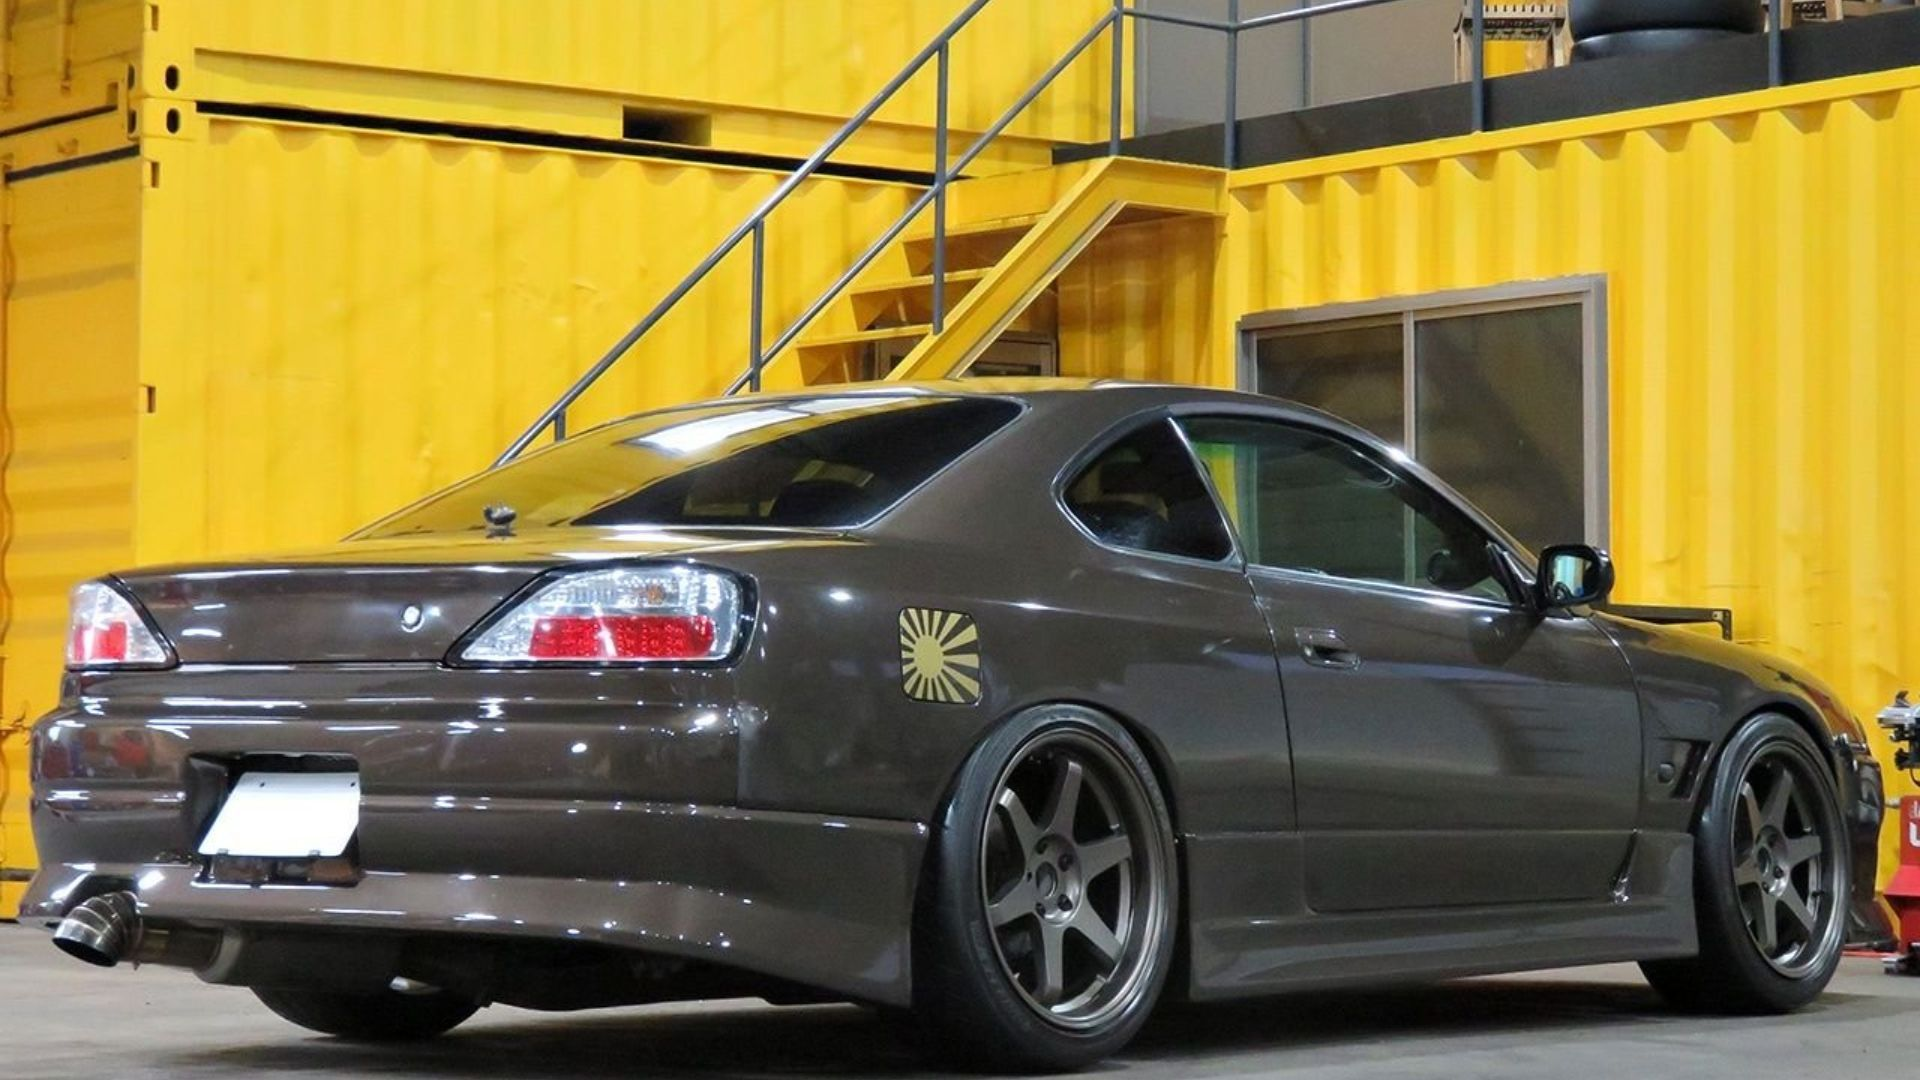 Invest In a Drift-Ready 1999 Nissan Silvia